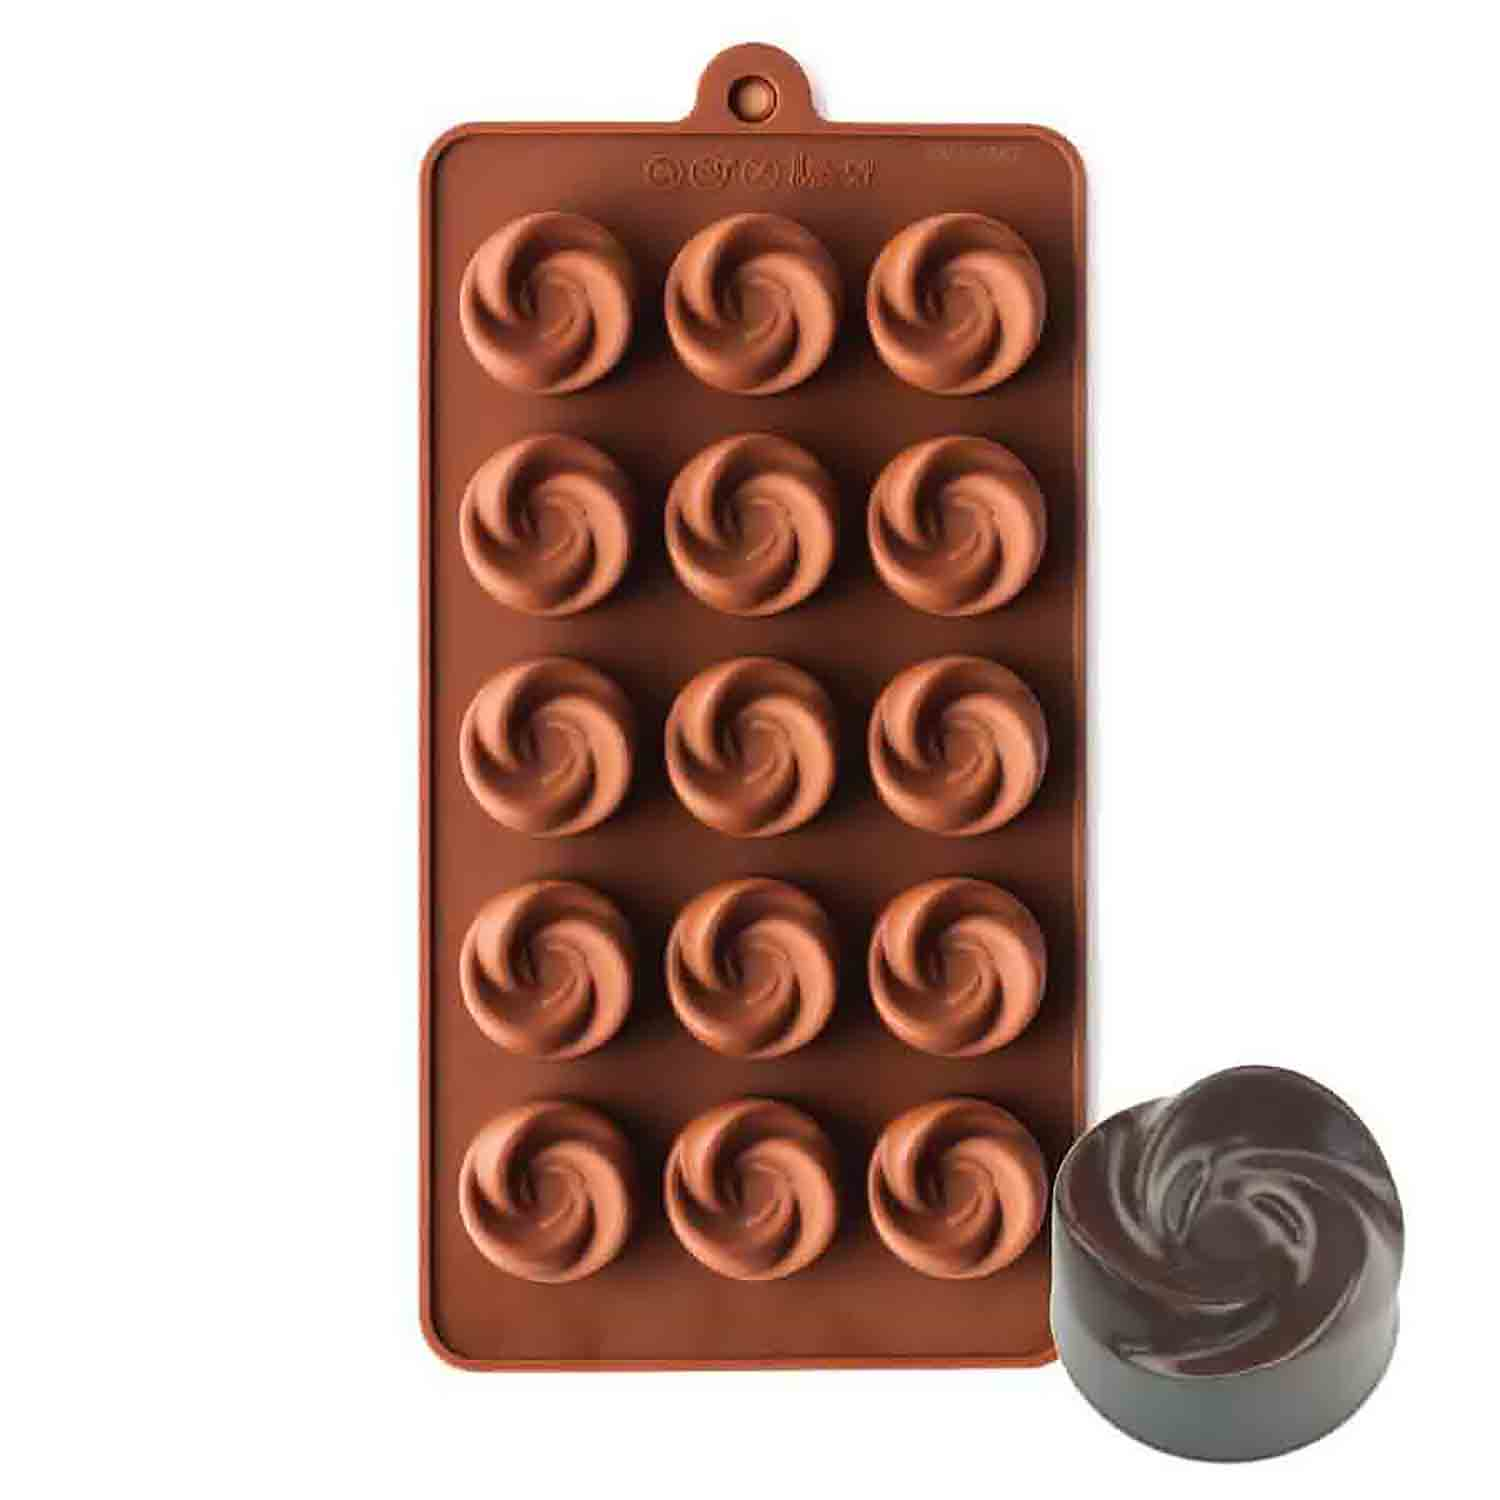 Rosette Silicone Chocolate Candy Mold Ny Scm1313